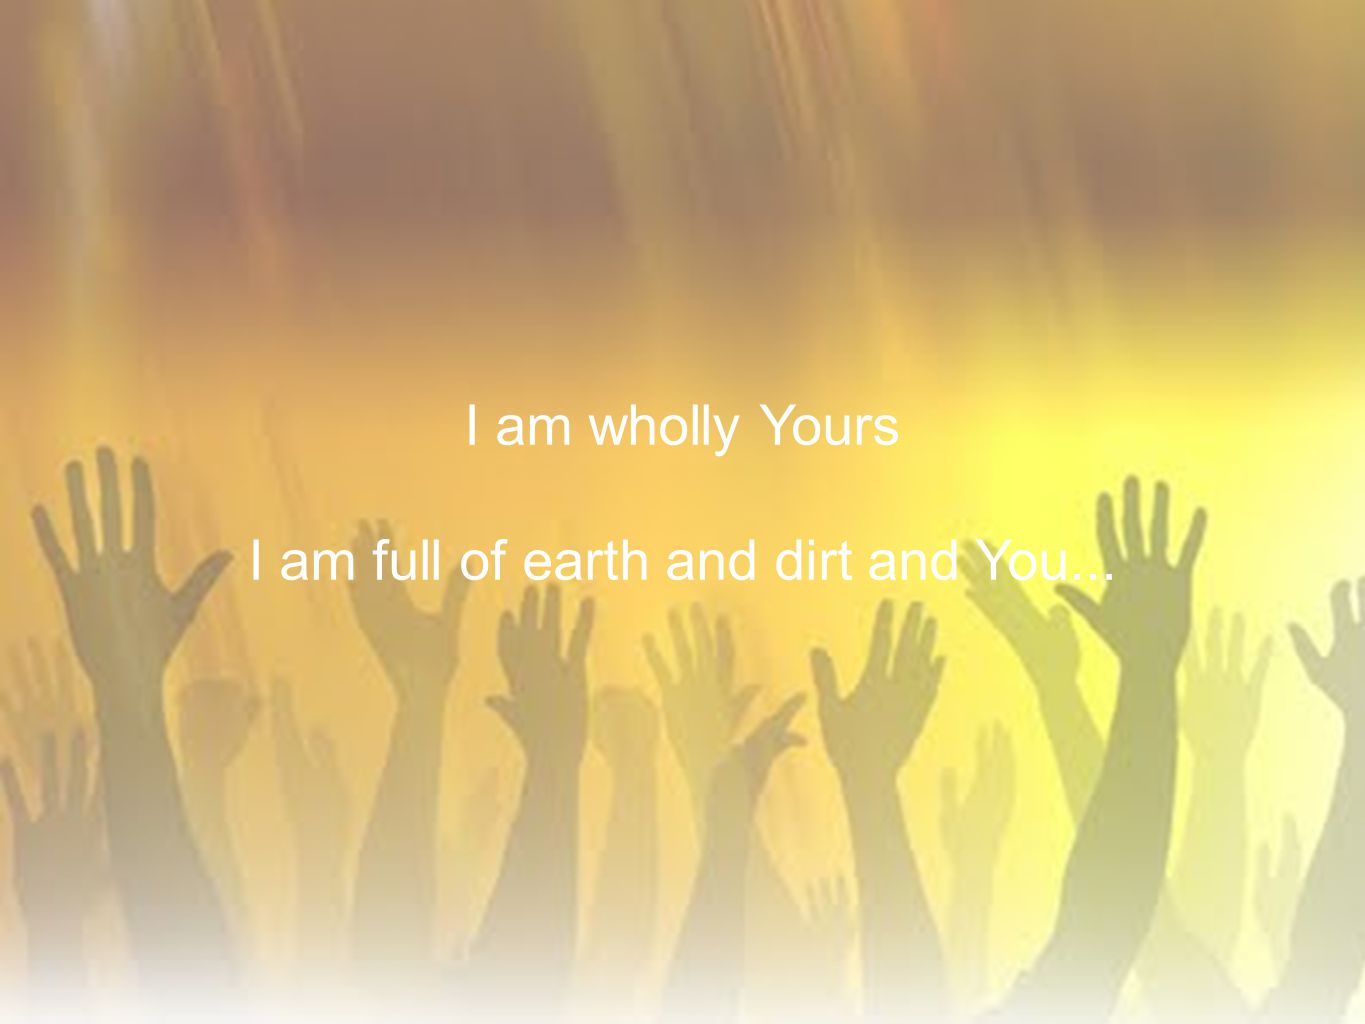 I am full of earth and dirt and You...